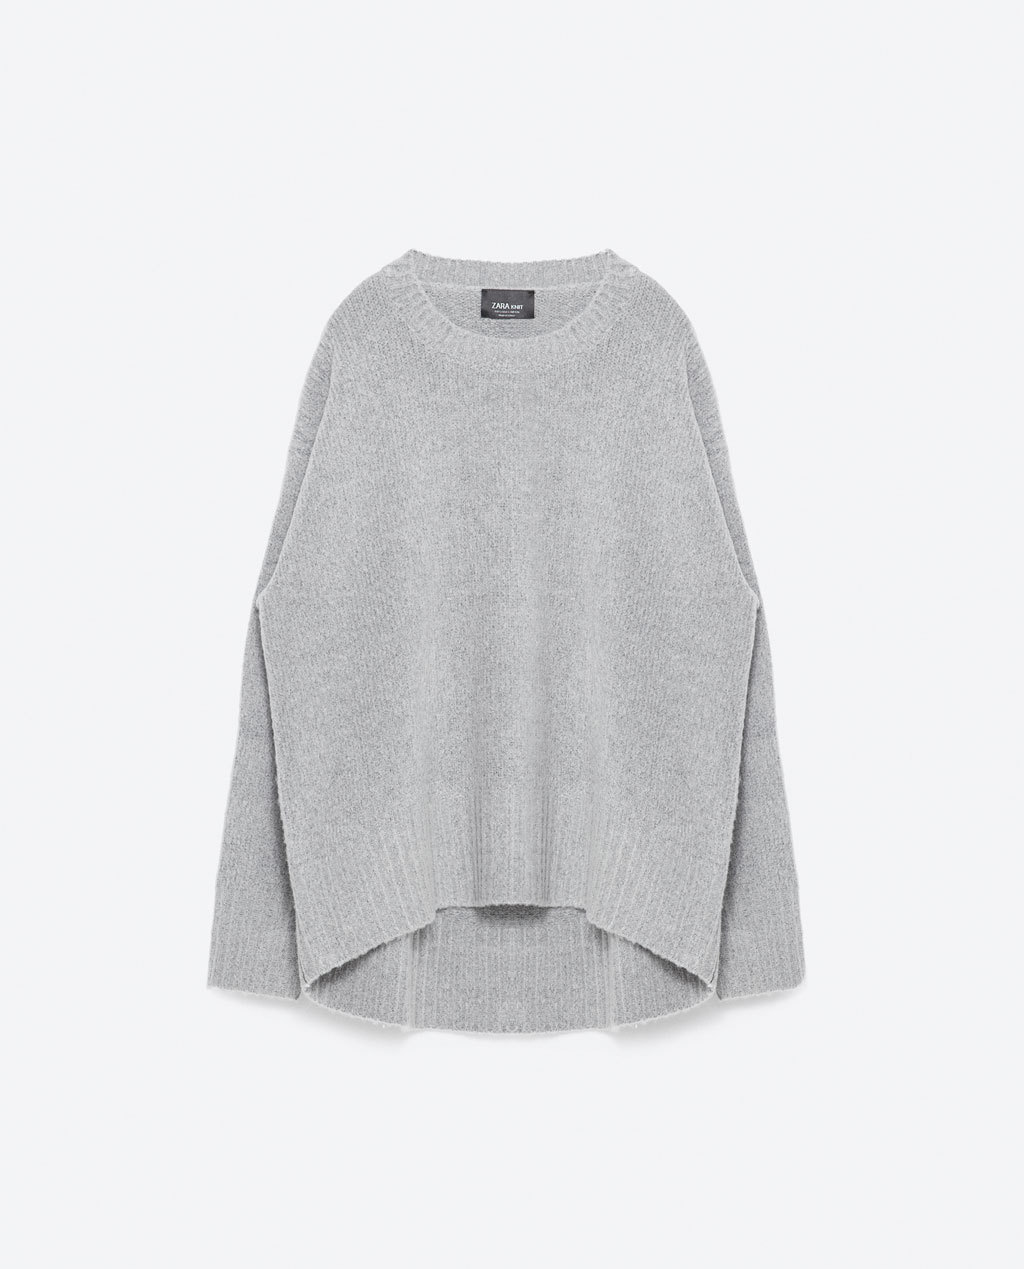 Oversized Sweater - sleeve style: dolman/batwing; pattern: plain; length: below the bottom; style: standard; predominant colour: light grey; occasions: casual; fibres: acrylic - mix; fit: loose; neckline: crew; sleeve length: long sleeve; texture group: knits/crochet; pattern type: knitted - fine stitch; season: s/s 2016